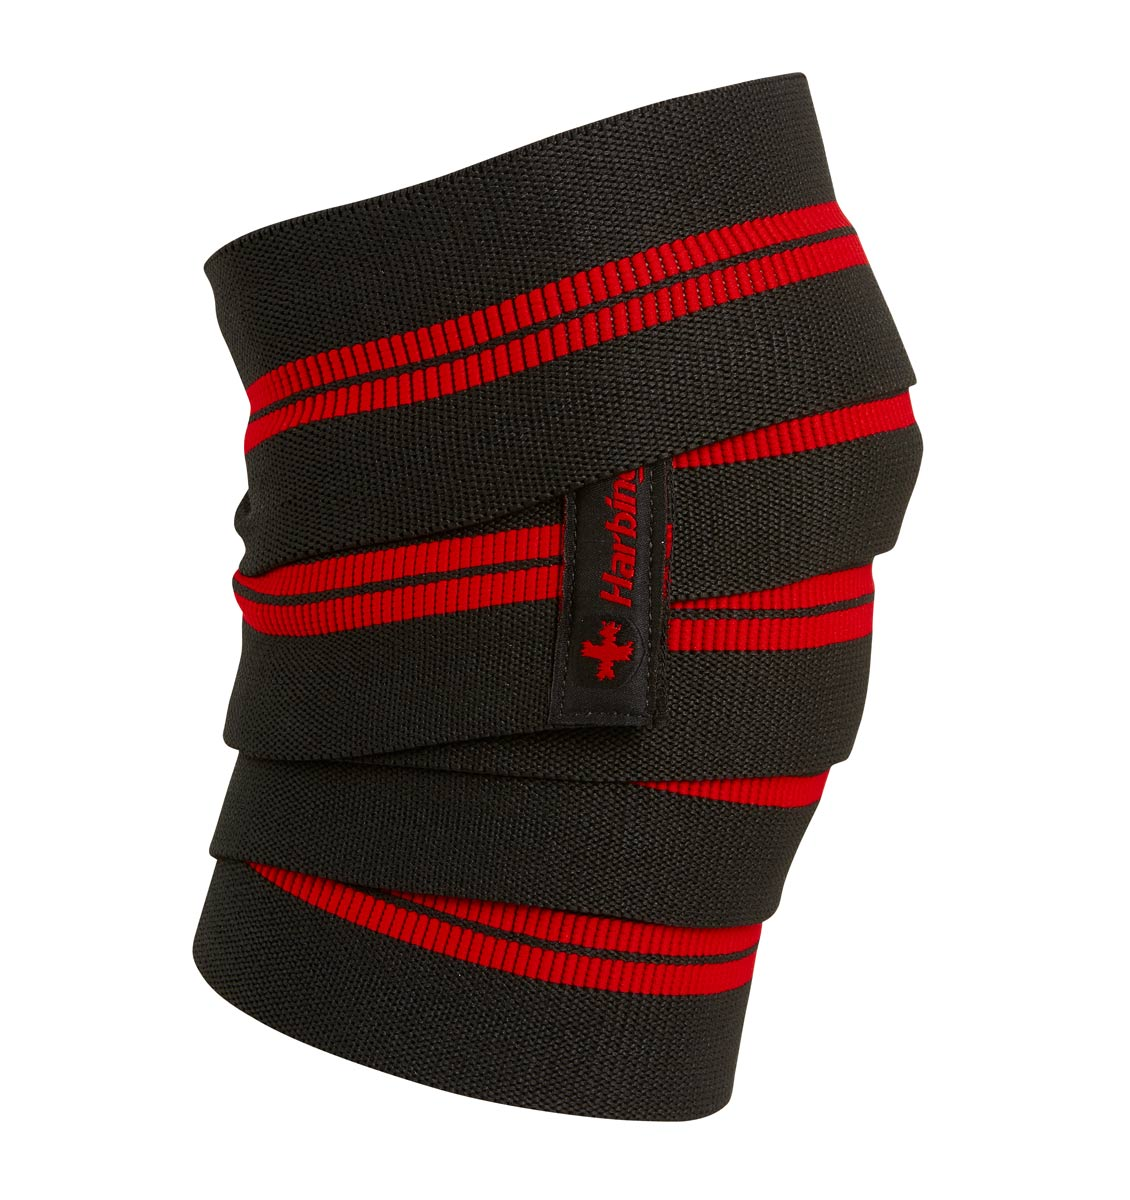 46300 Harbinger 78 inch Red Line Knee Wraps Side